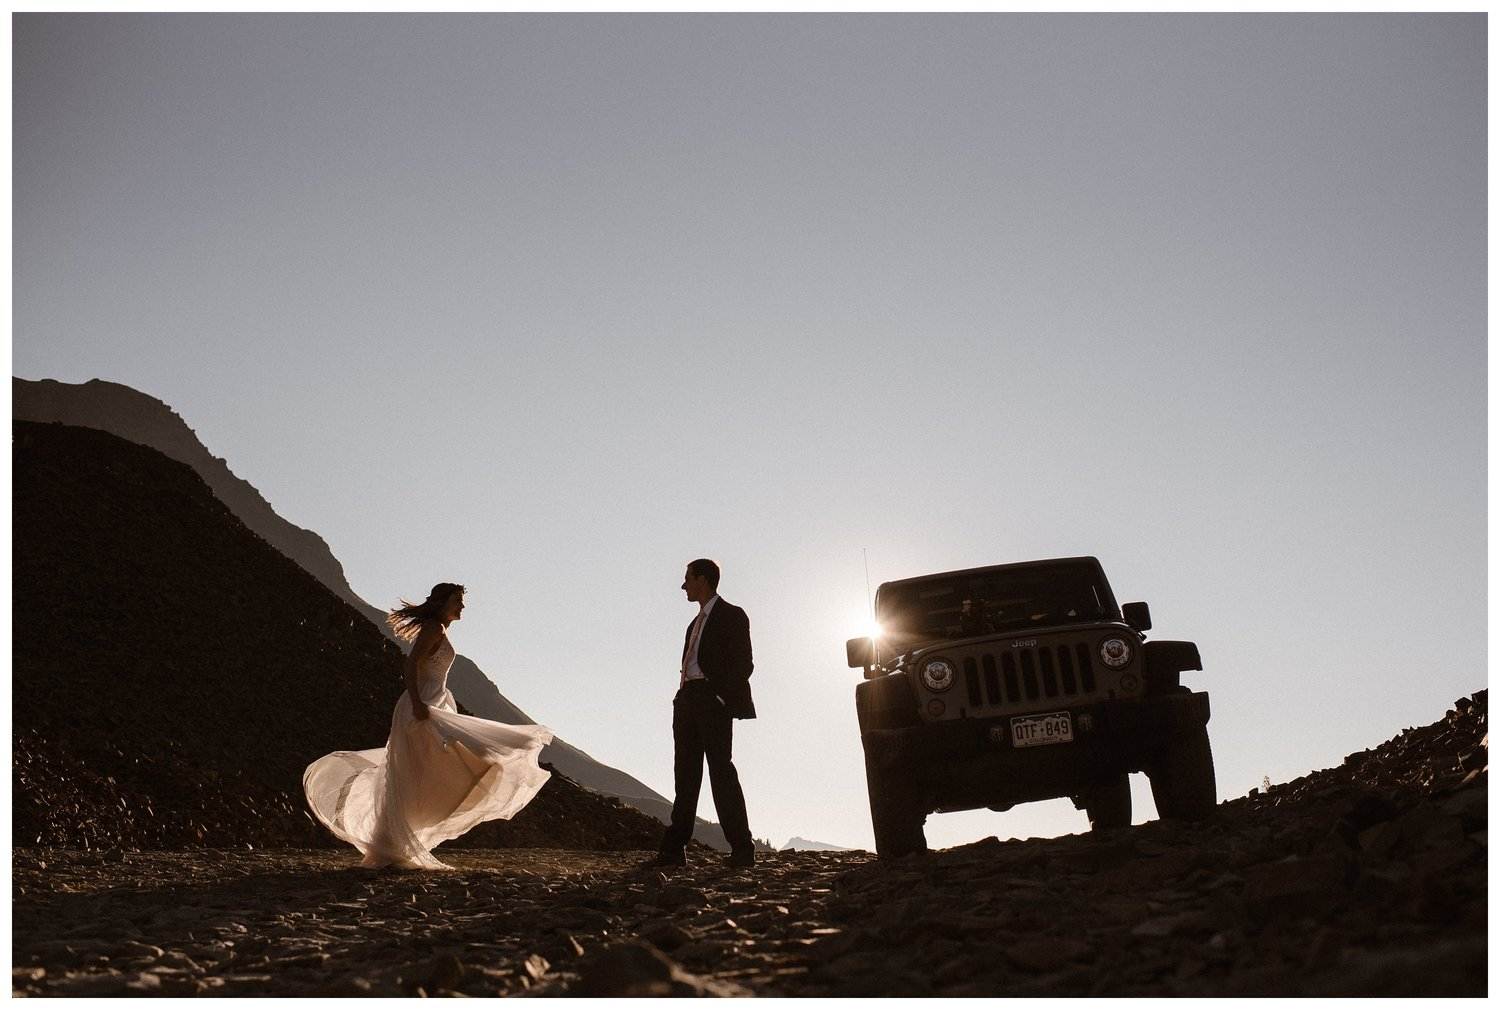 A bride and groom look at each other on a road. There is a jeep beside them on the right.